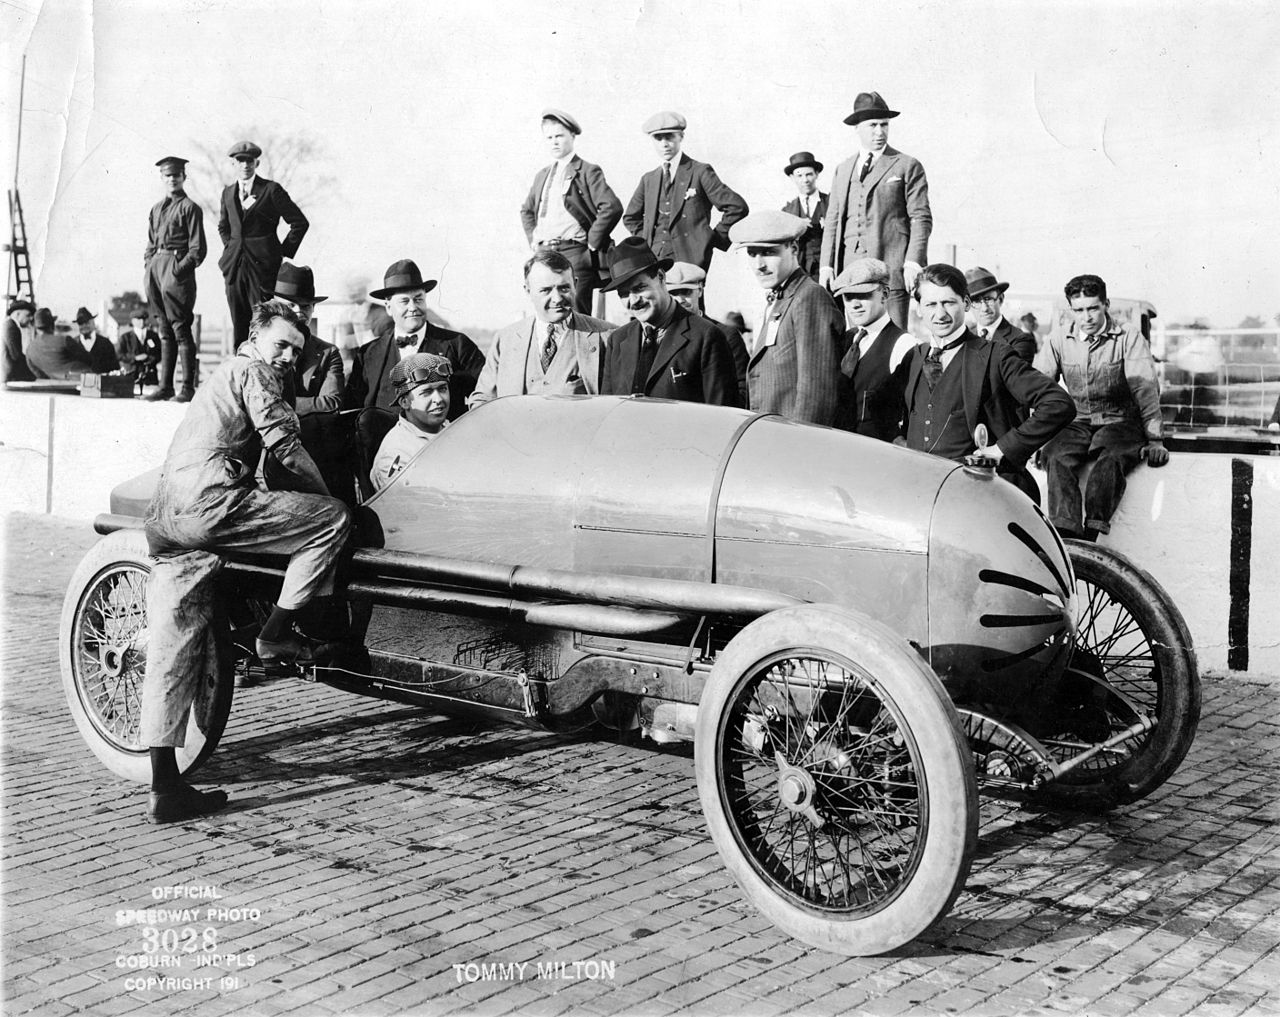 Tommy Milton at the 1921 Indy 500